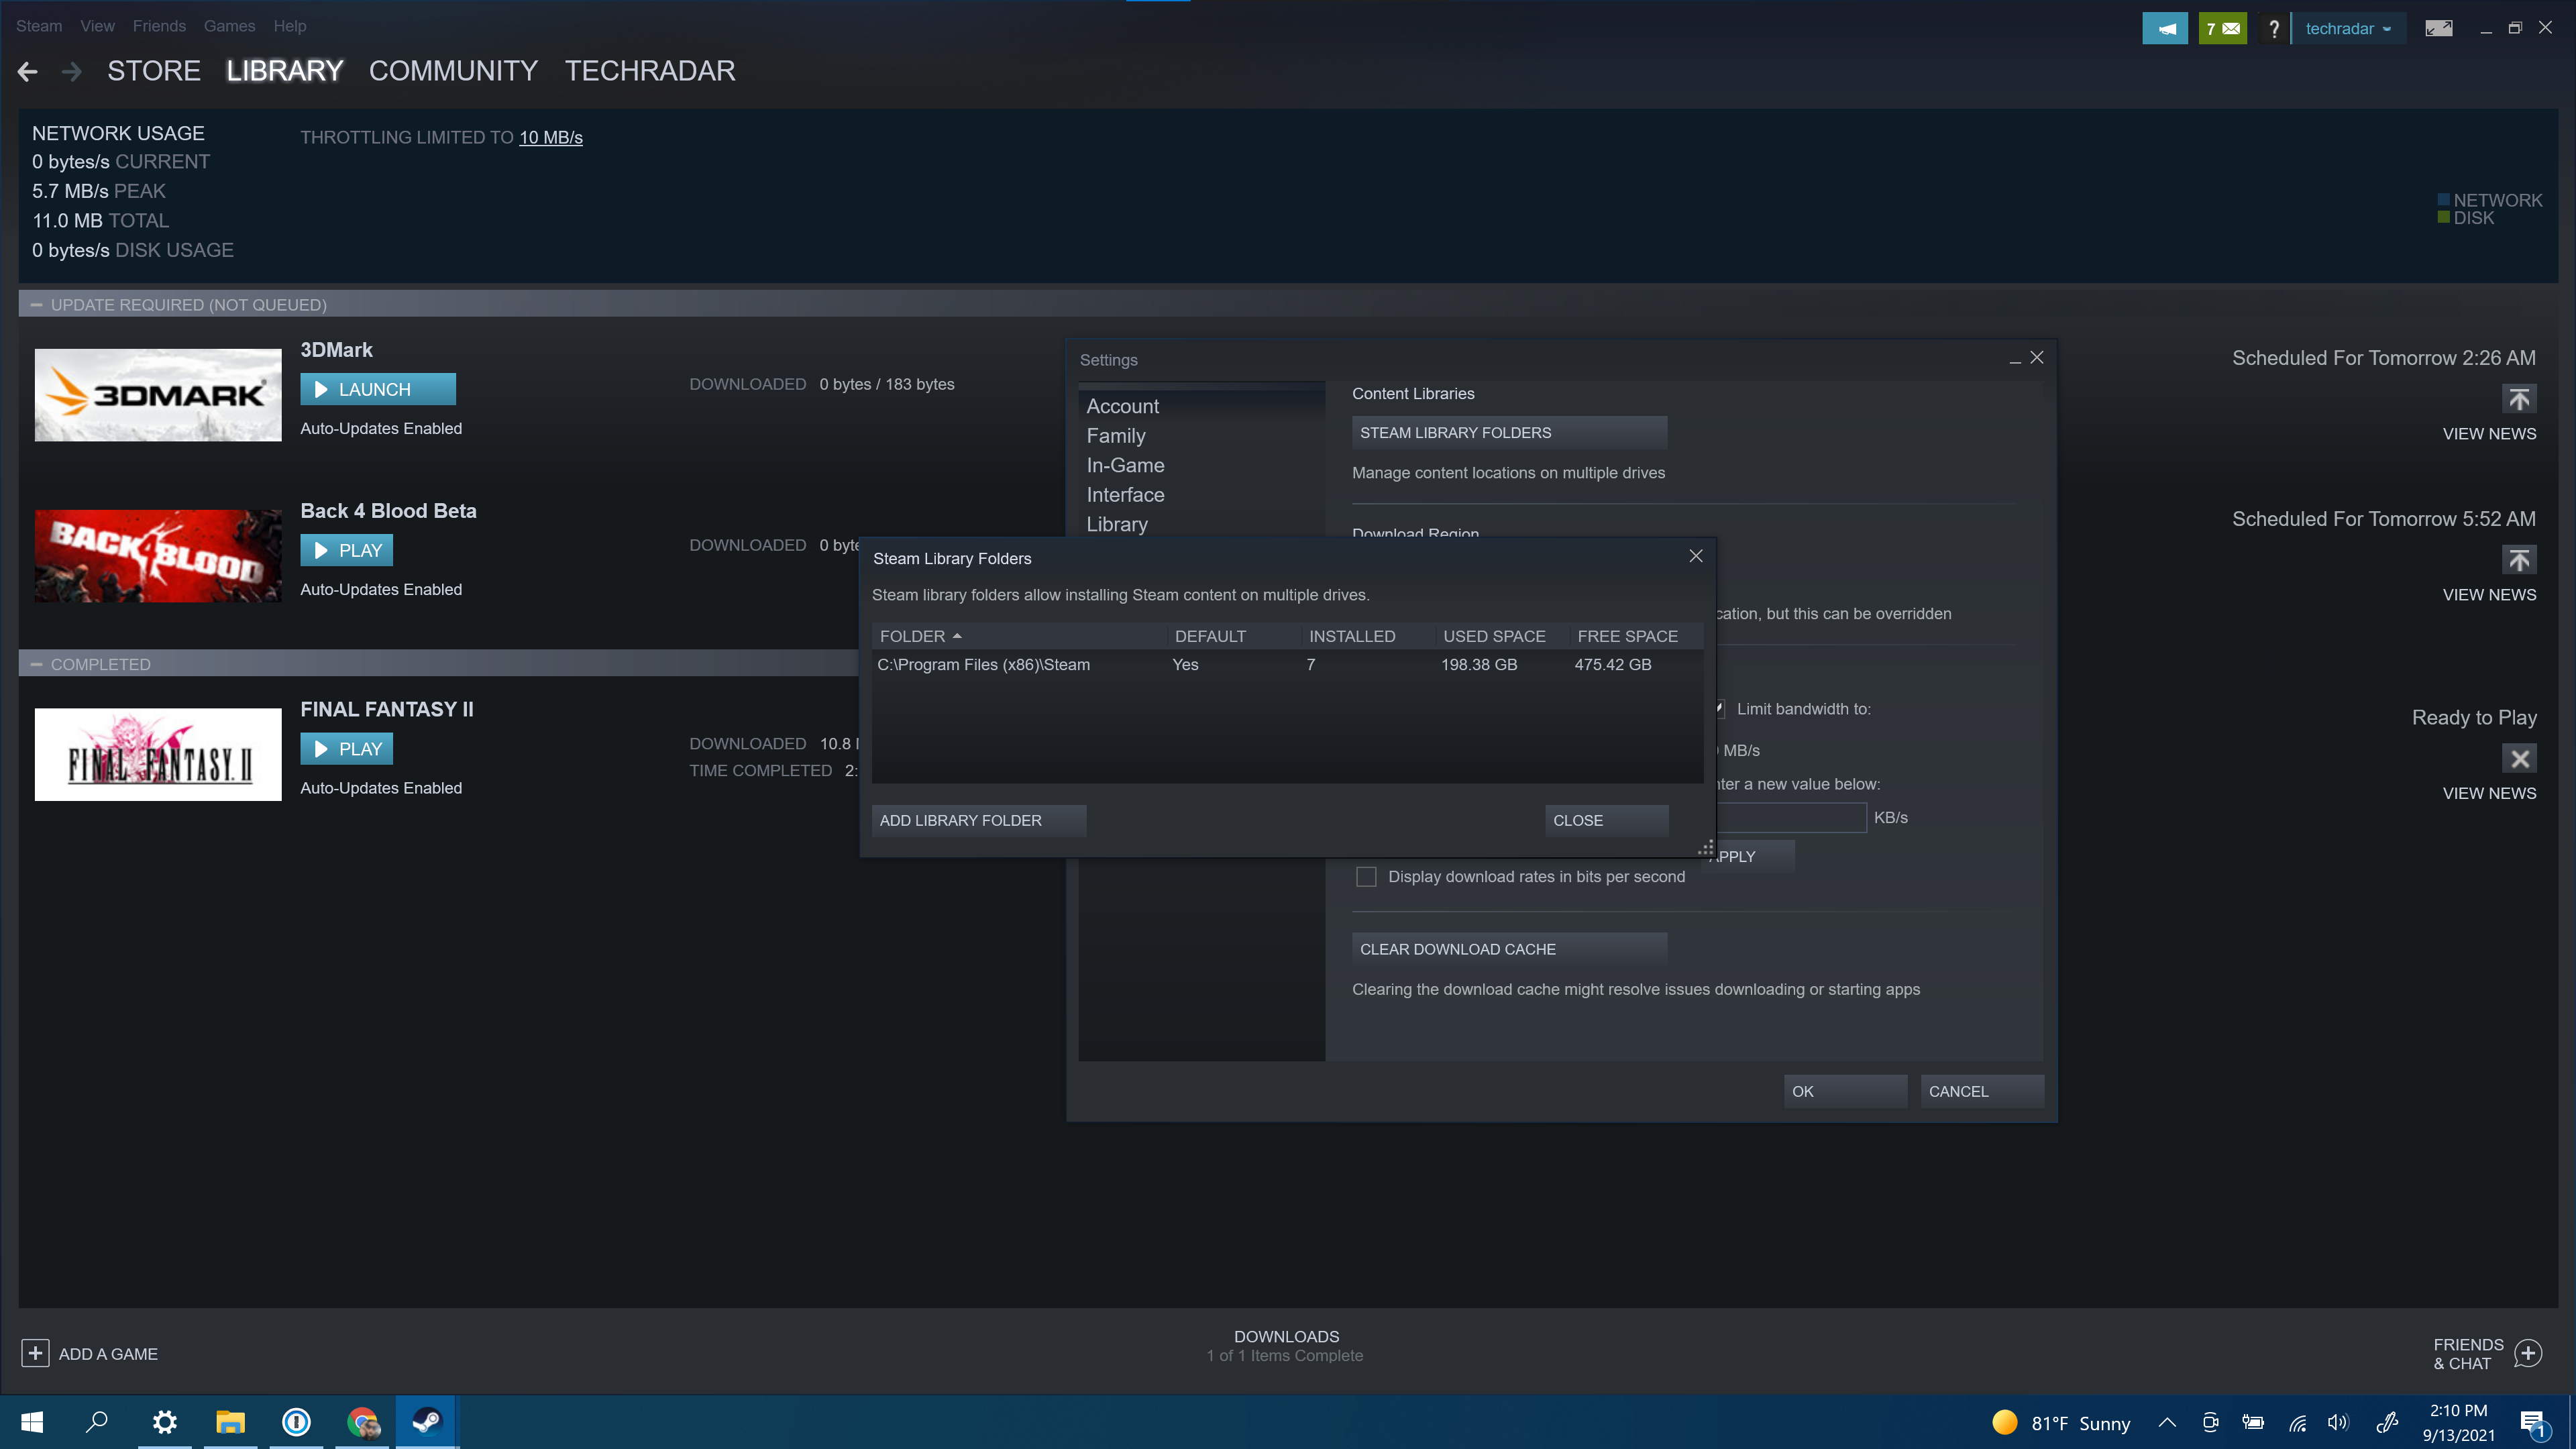 The old Steam storage manager view, showing how useless it really was